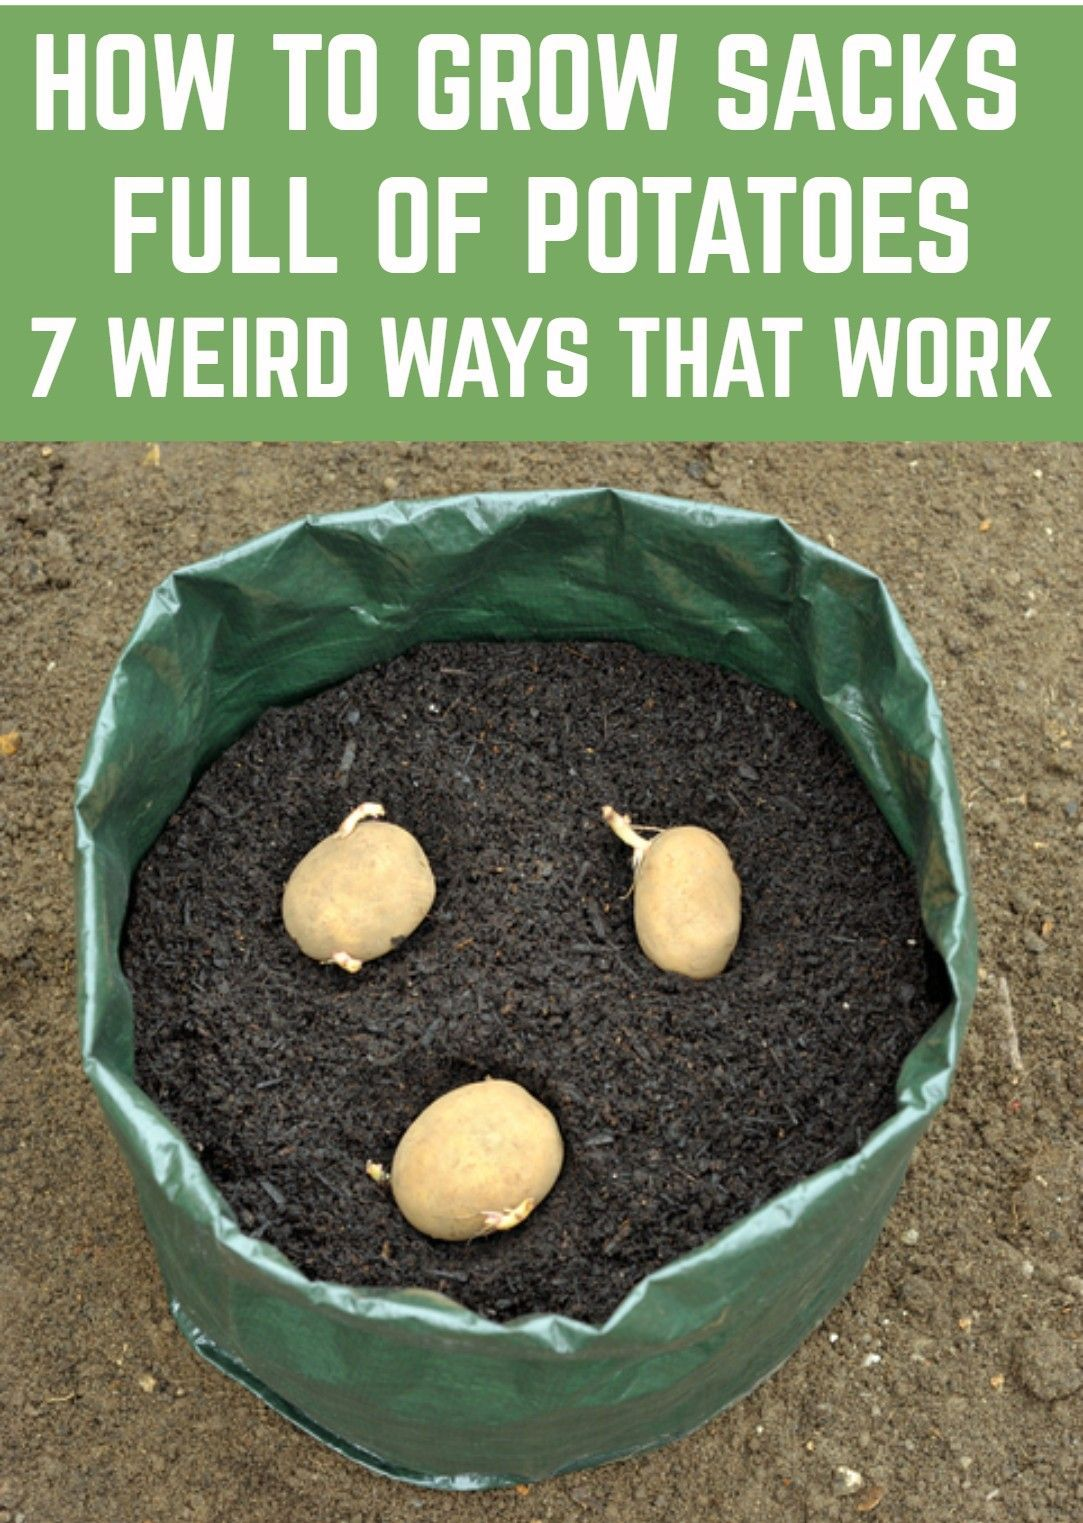 How To Grow Sacks Full Of Potatoes - 7 Weird Ways That Really Work